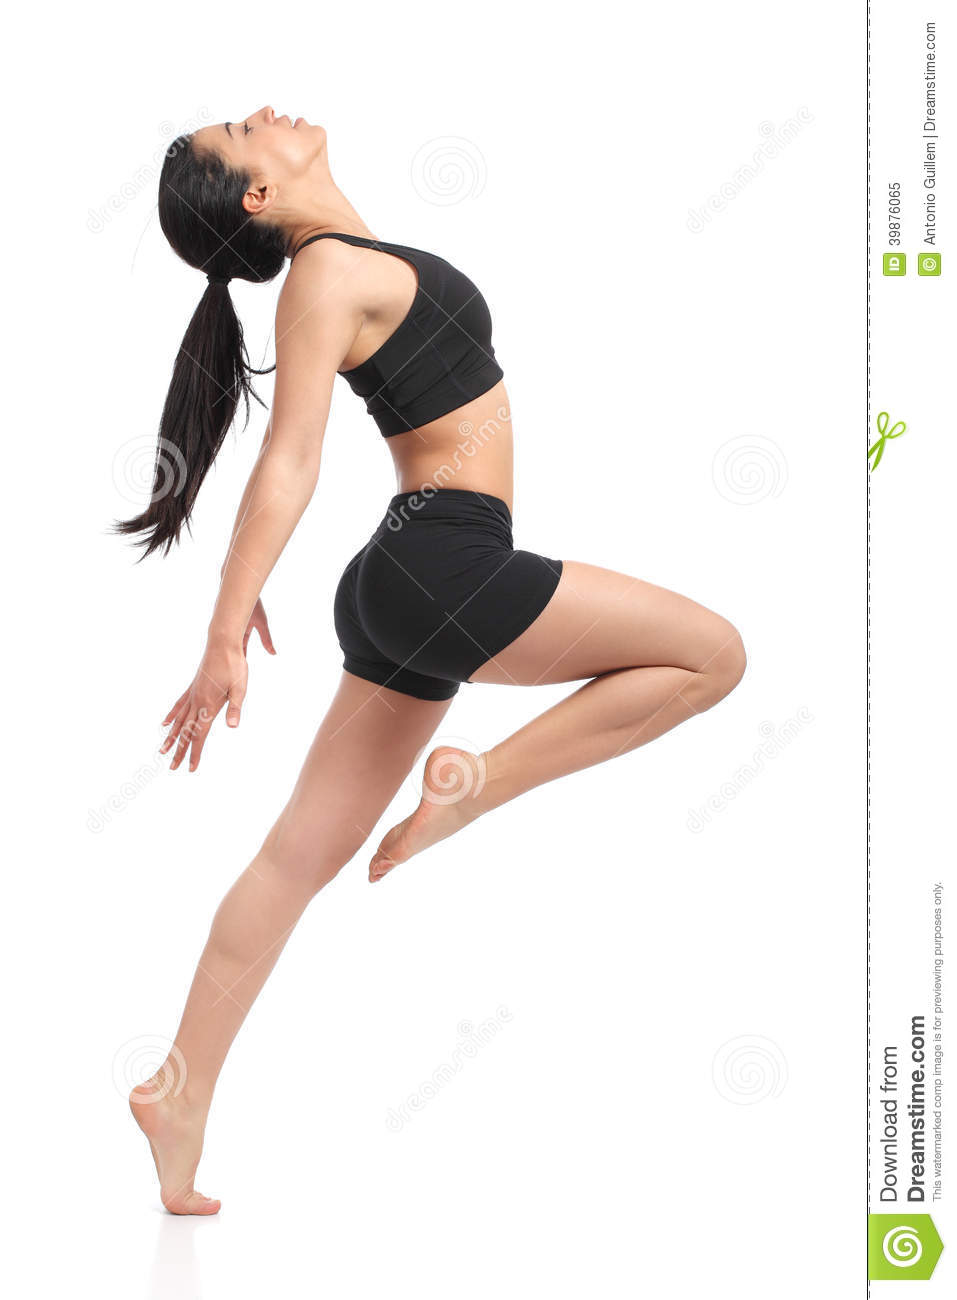 Fitness woman dancing doing aerobic exercises